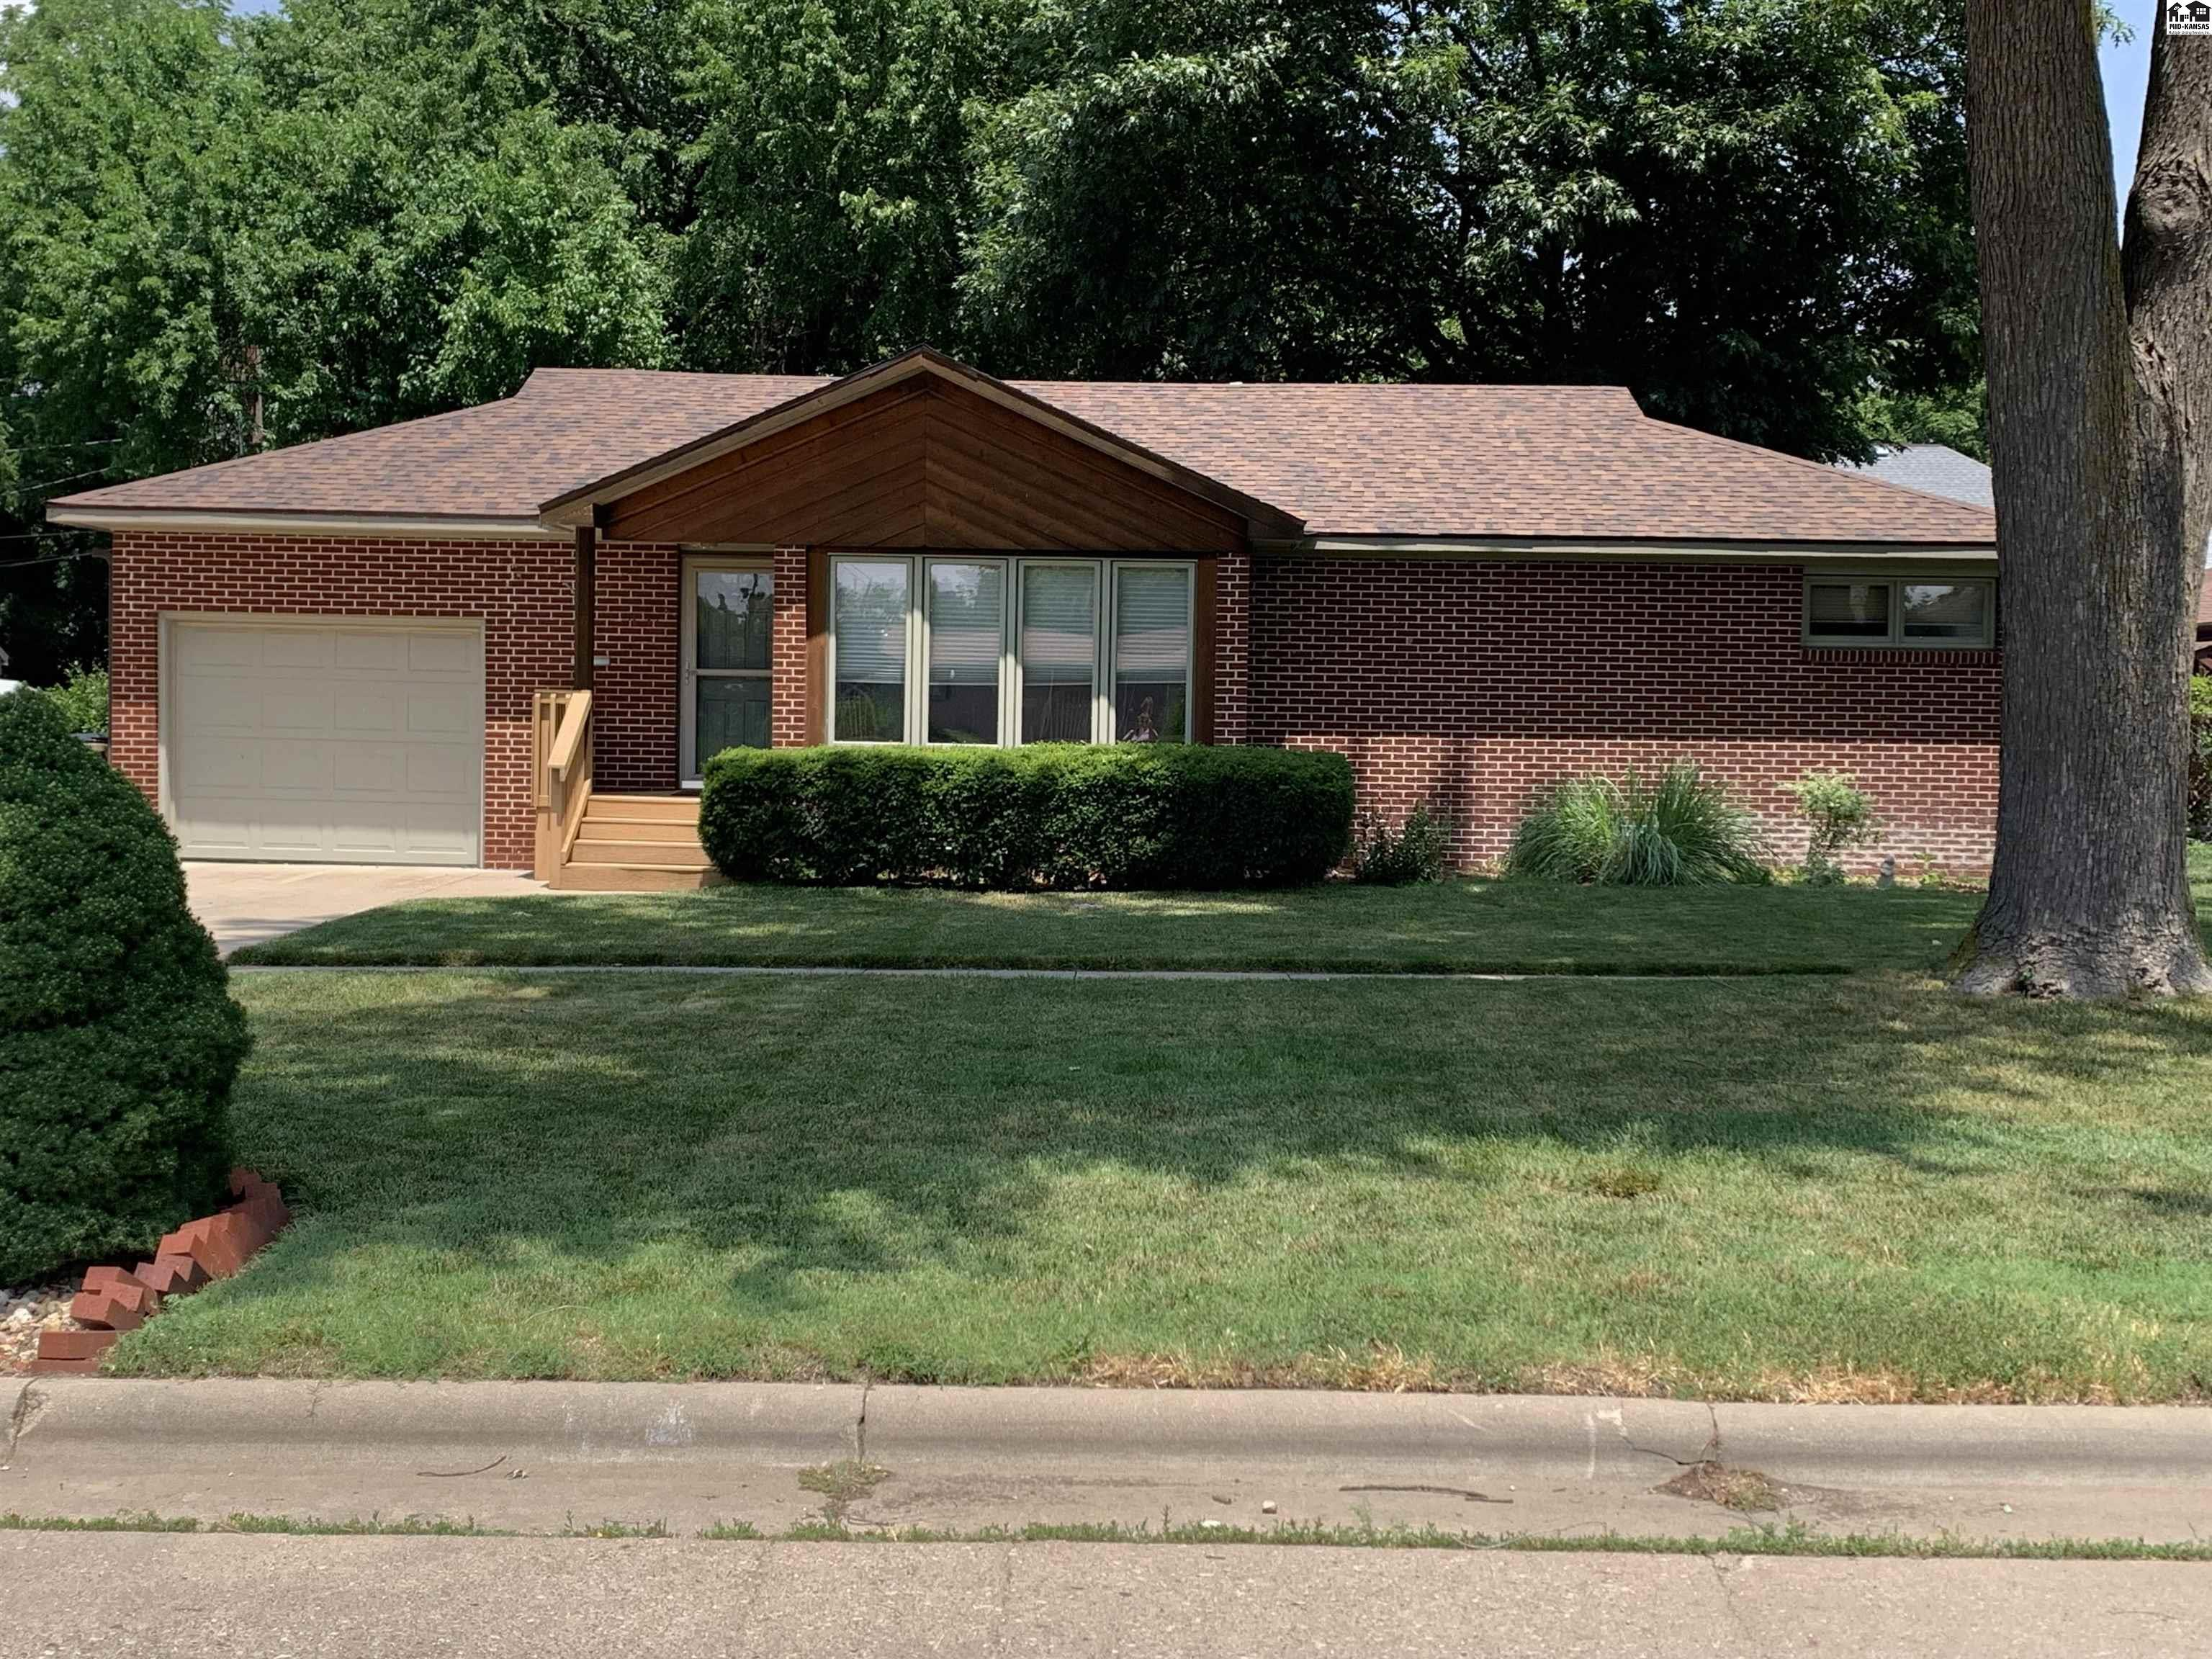 This nice all brick ranch style home is maintenance free, plus just put on new Impact Resistant shingles on roof and new guttering too!  Underground sprinkler system adds to the ease of lawn care.  The back yard is fenced in with a natural gas plumbed-in grill and 220 wiring for a possible addition of a hot tub.  Interior is just as nice.  2 beds, 1 bath (was updated in 2018) on main floor, with formal dining room, a cute kitchen tucked in the center of the home with nice bar area for informal eating.  To finish off the main living is a large living room hosting a large fireplace which has been converted to a gas log but could be switched back to wood-burning.  Basement sports 2 nice bonus bedrooms, 1 updated bath and a nice family room,  Laundry room is also located in the basement.